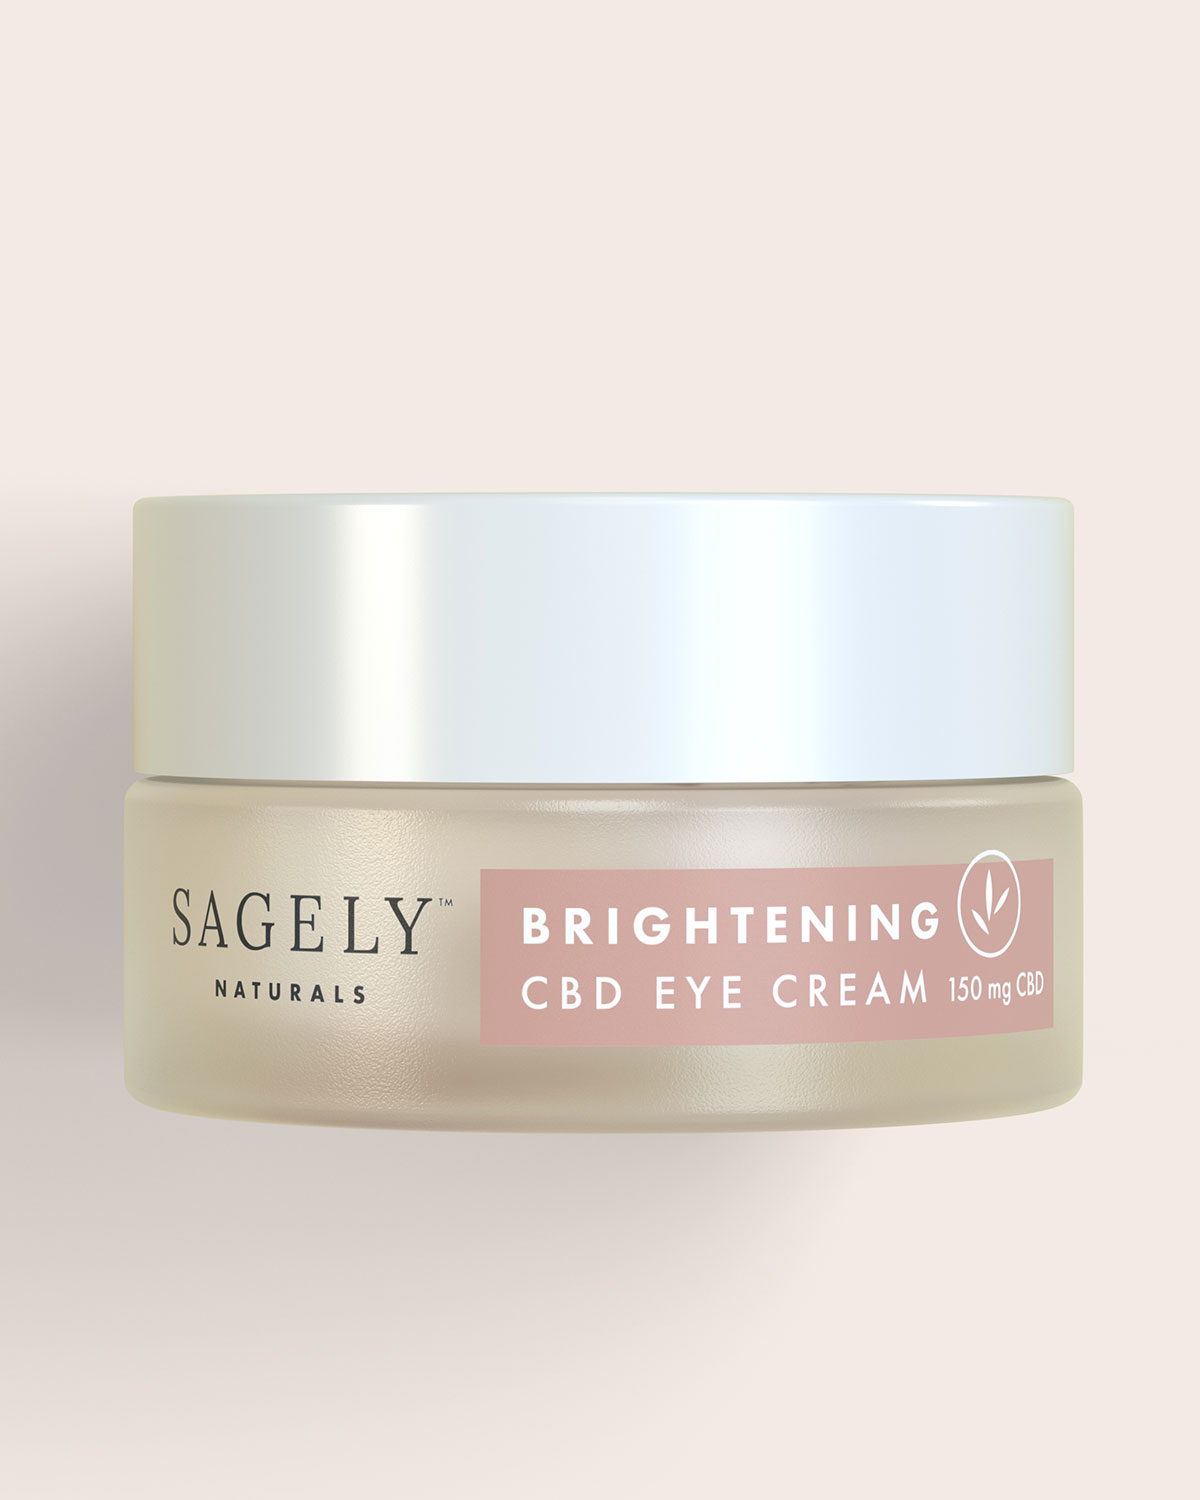 Brightening Eye Cream With 150 Mg Cbd by Sagely Naturals